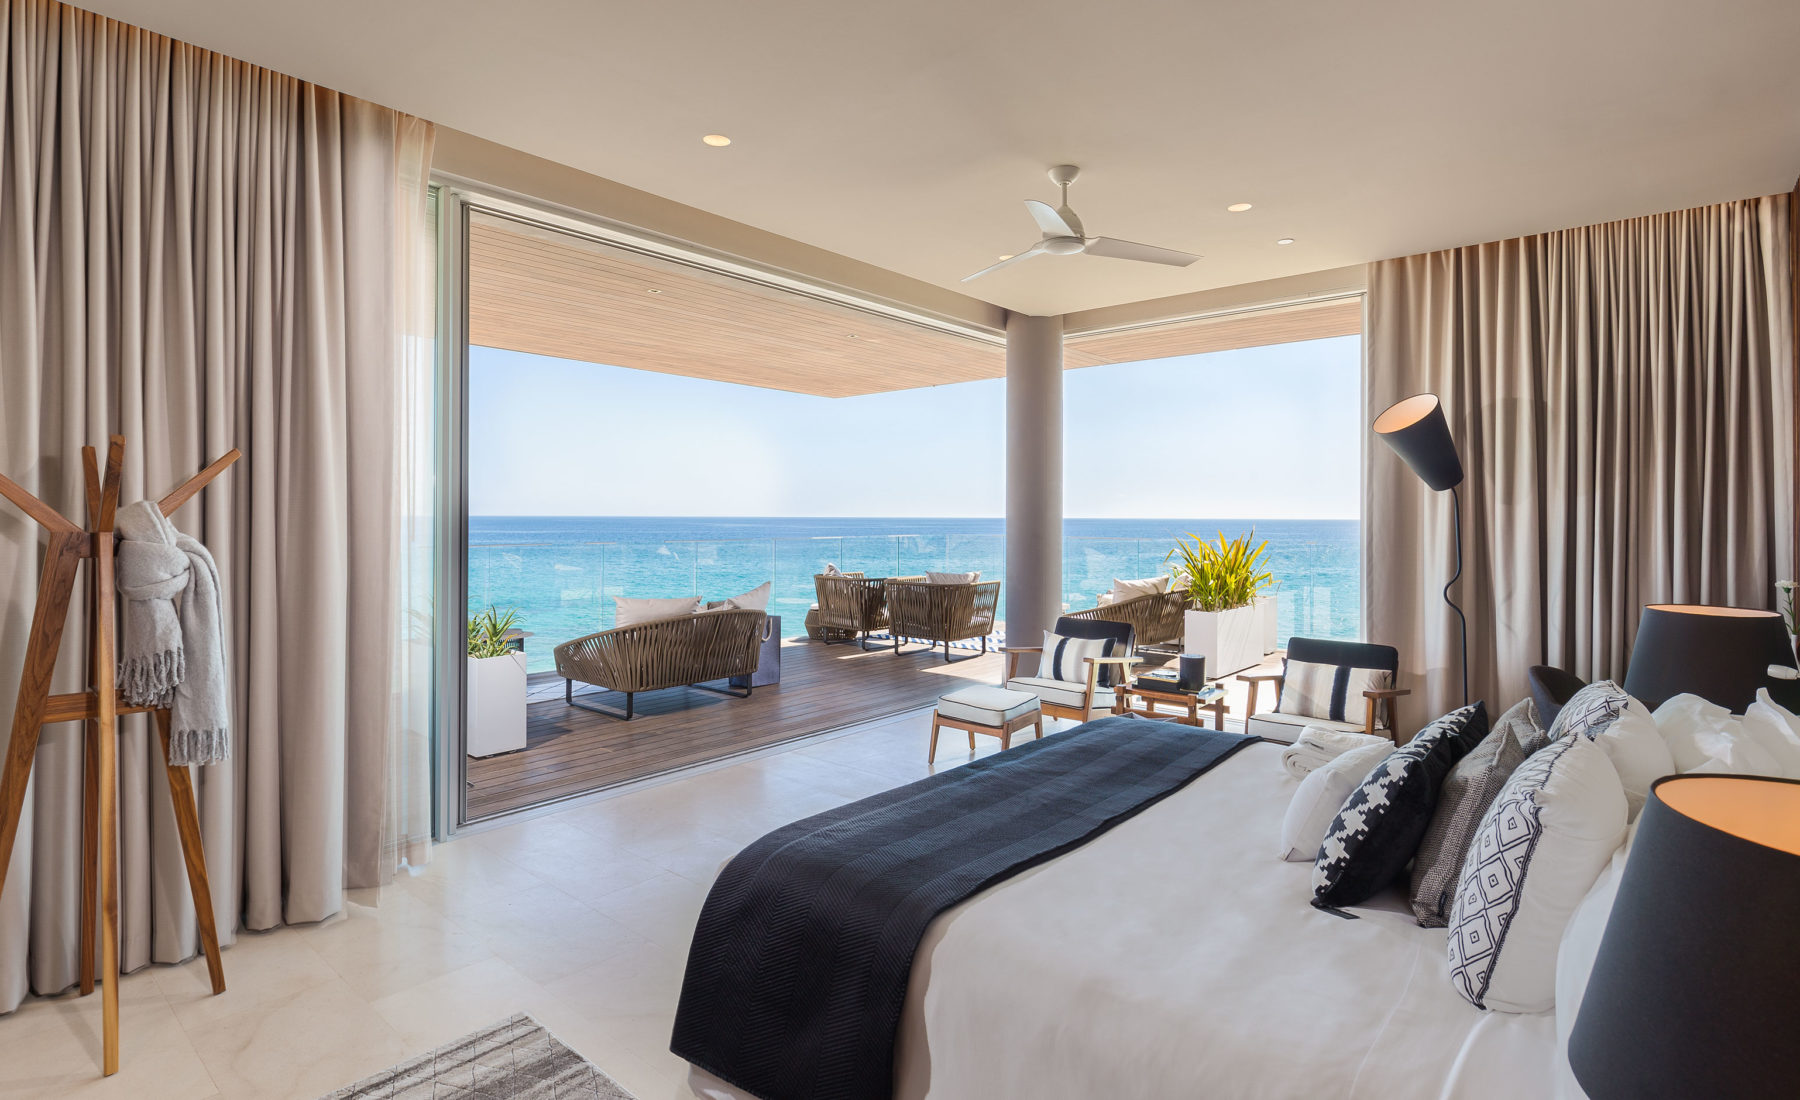 New Hotel Openings 2019